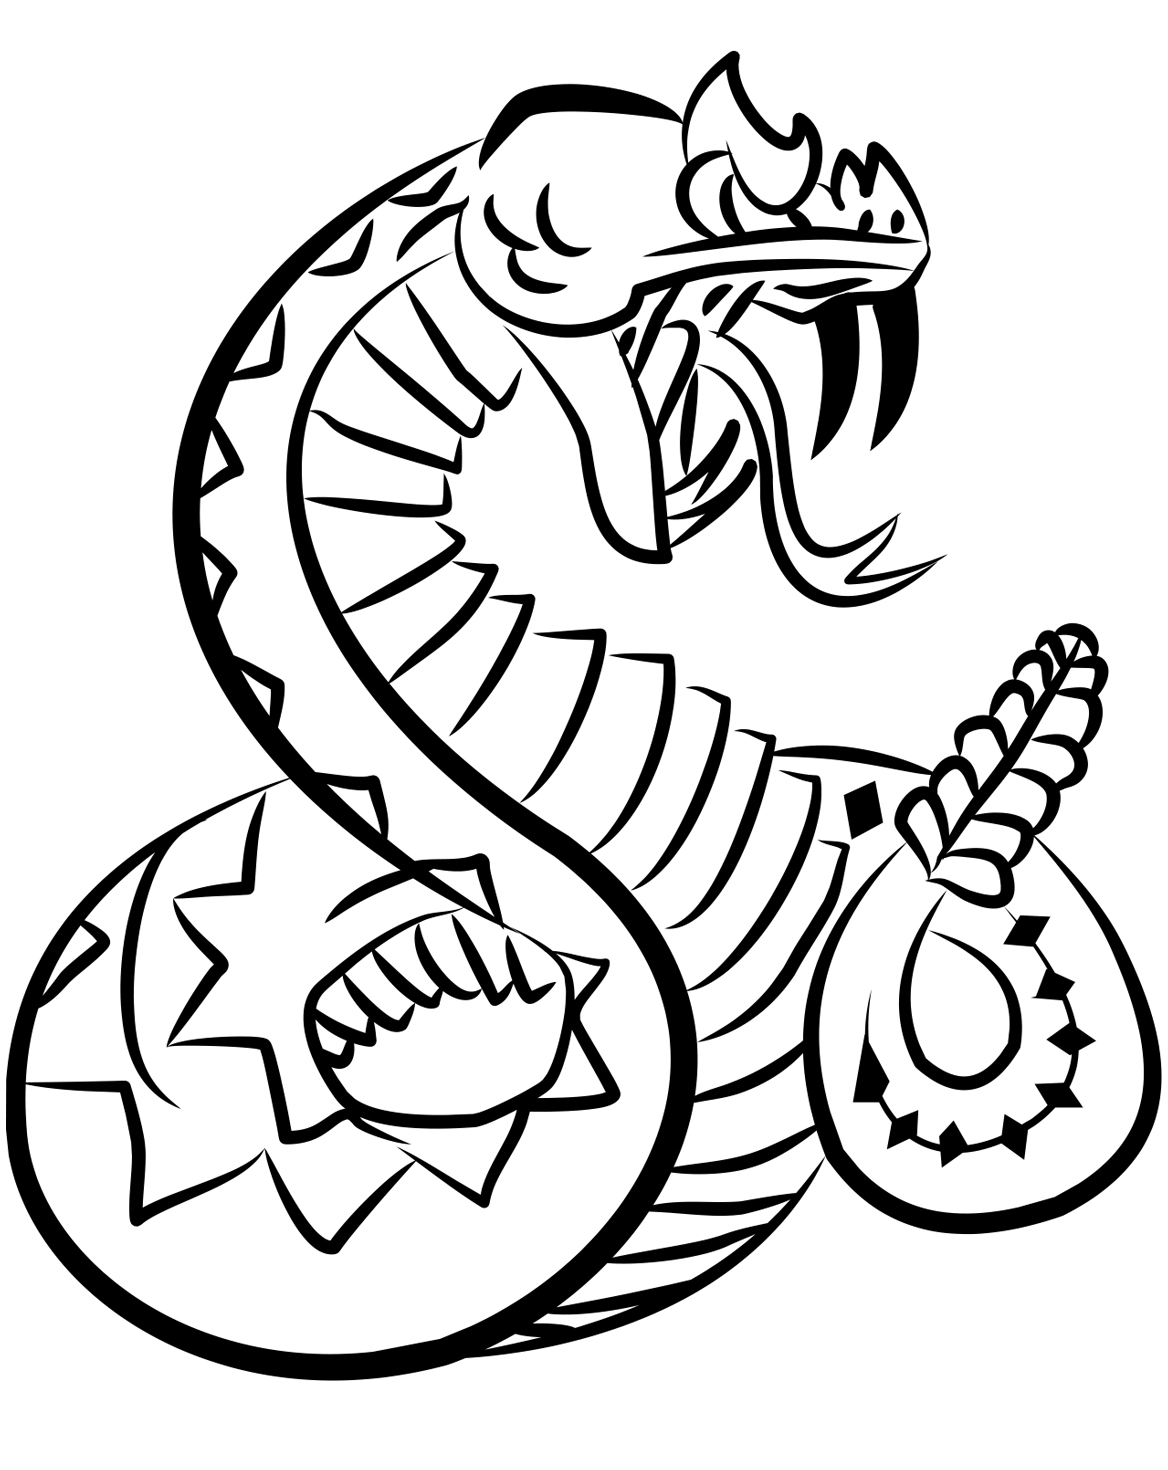 Rattlesnake Coloring Page | Coloring pages, Snake crafts, Rattlesnake | 1470x1168